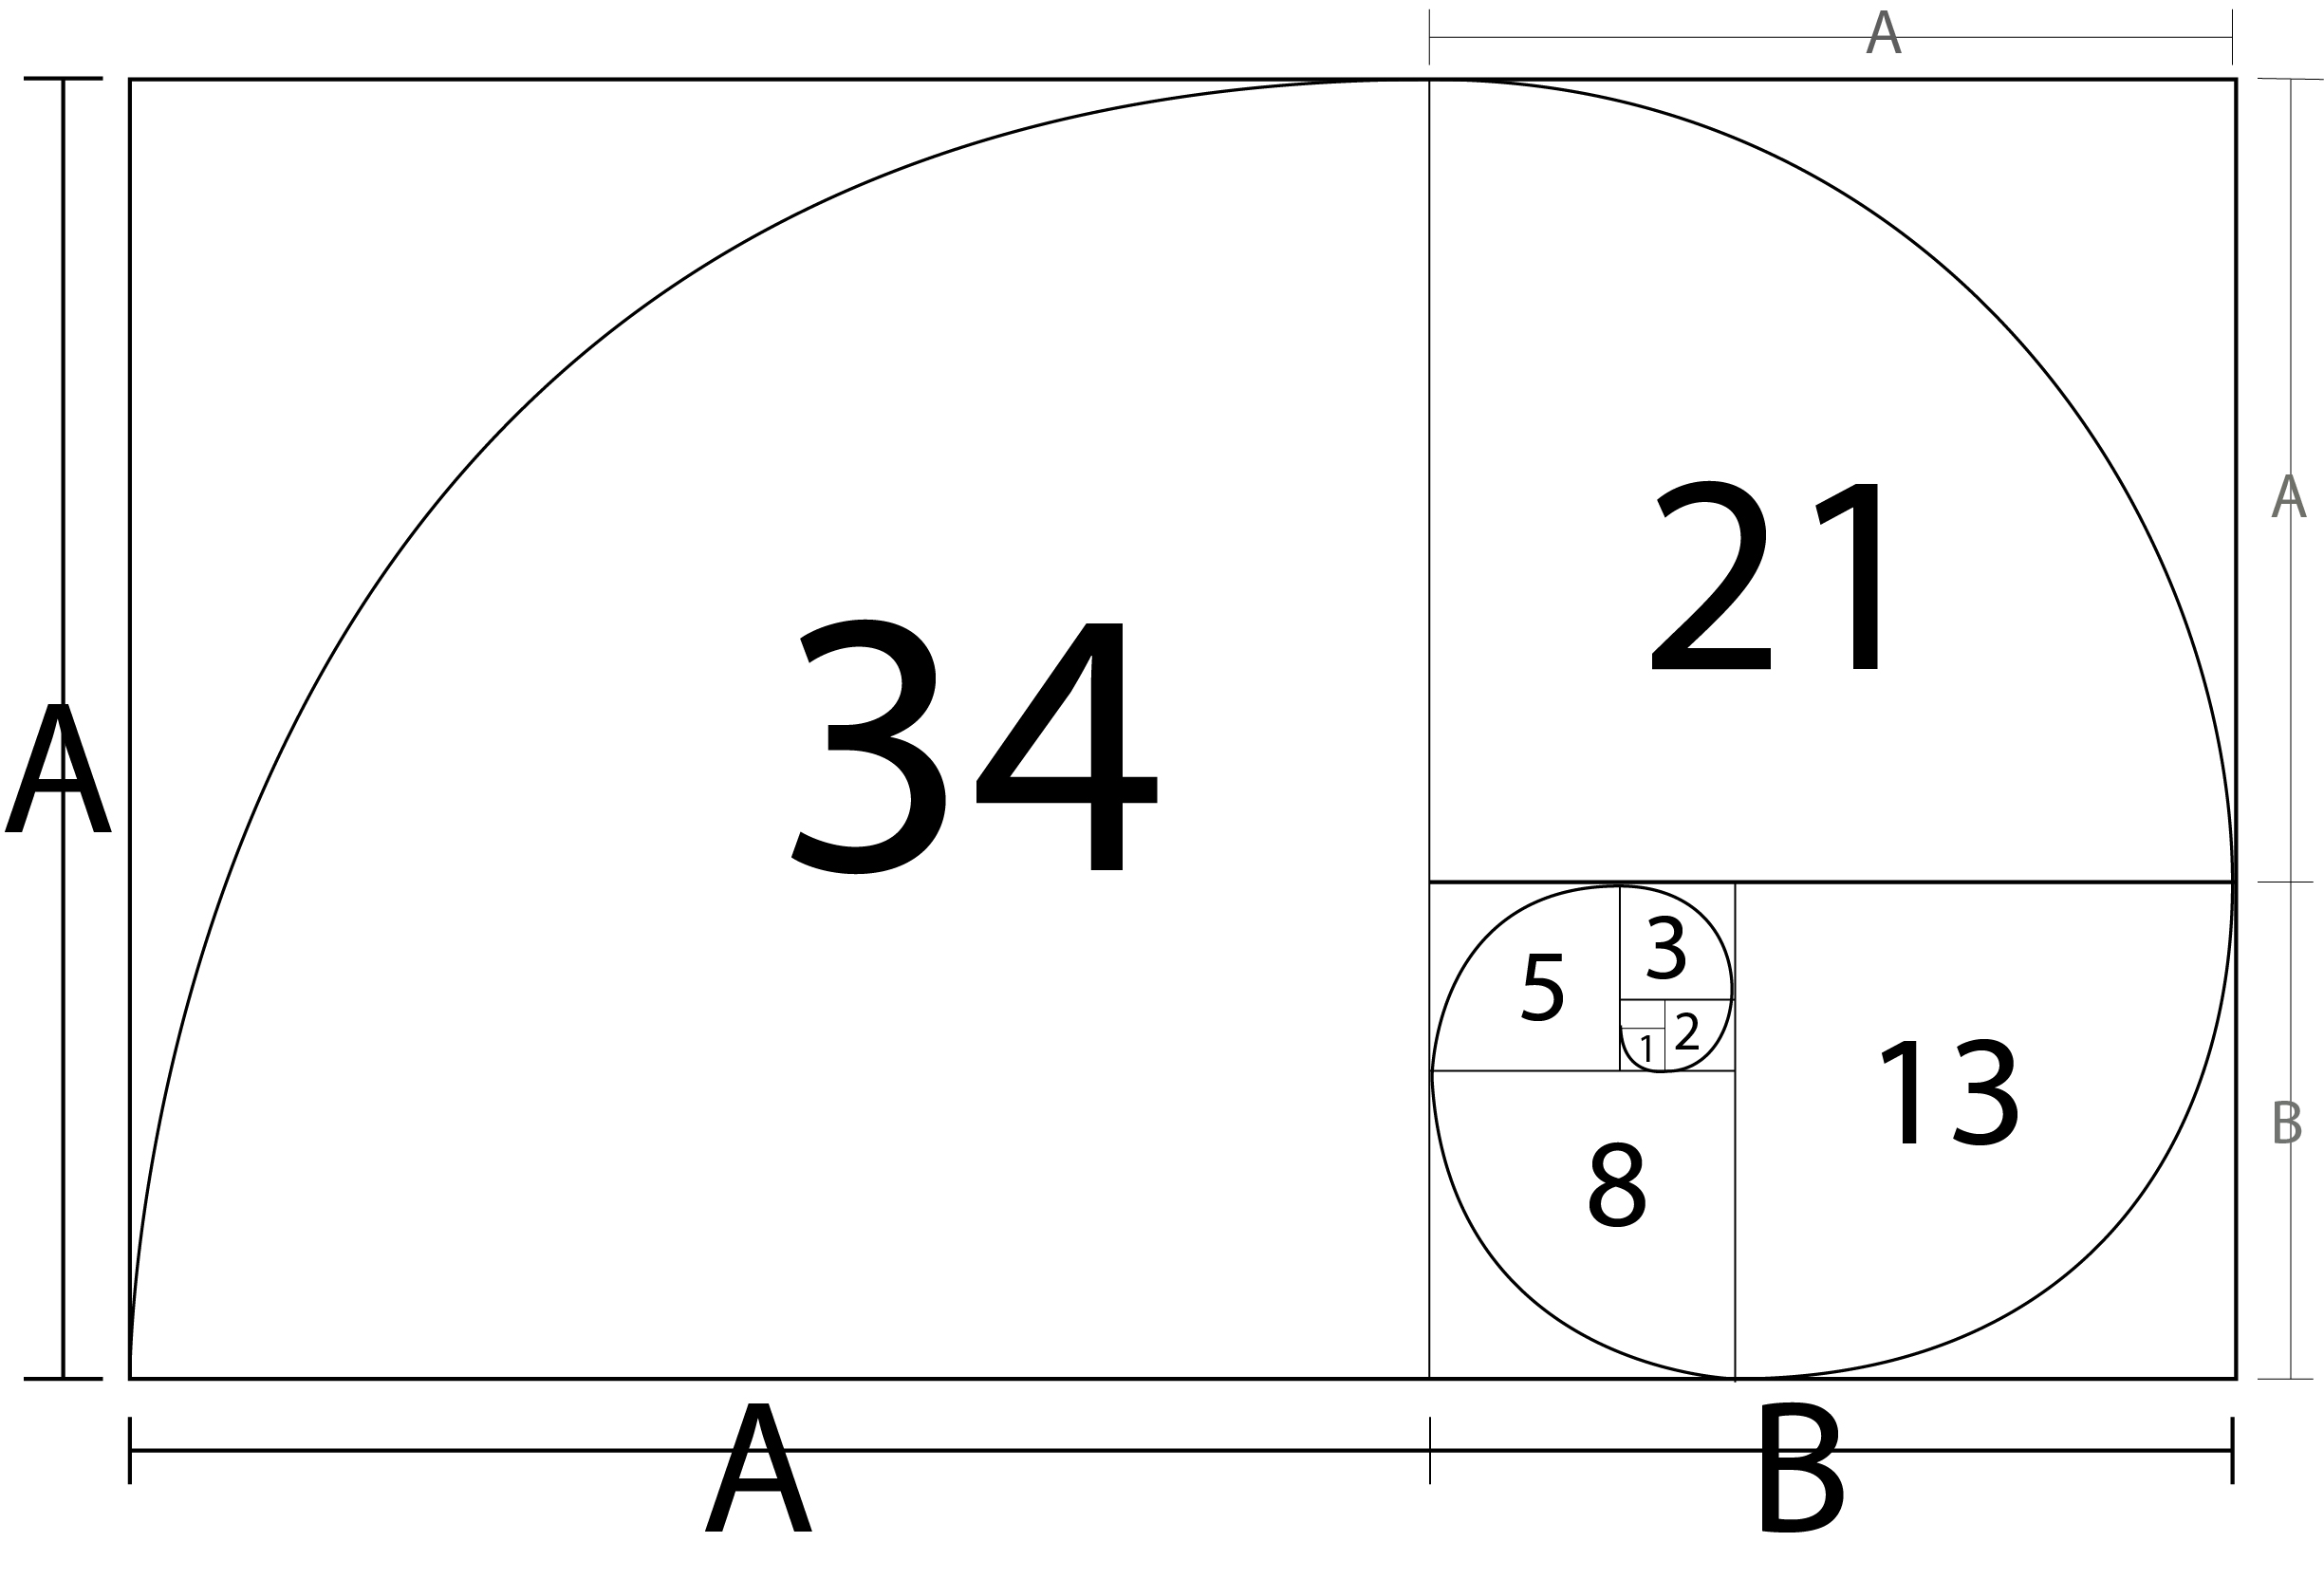 The  Golden ratio  is a special number found by dividing a line into two parts so that the longer part divided by the smaller part is also equal to the whole length divided by the longer part. It is often symbolized using phi, after the 21st letter of the Greek alphabet. Credit:  www.livescience.com